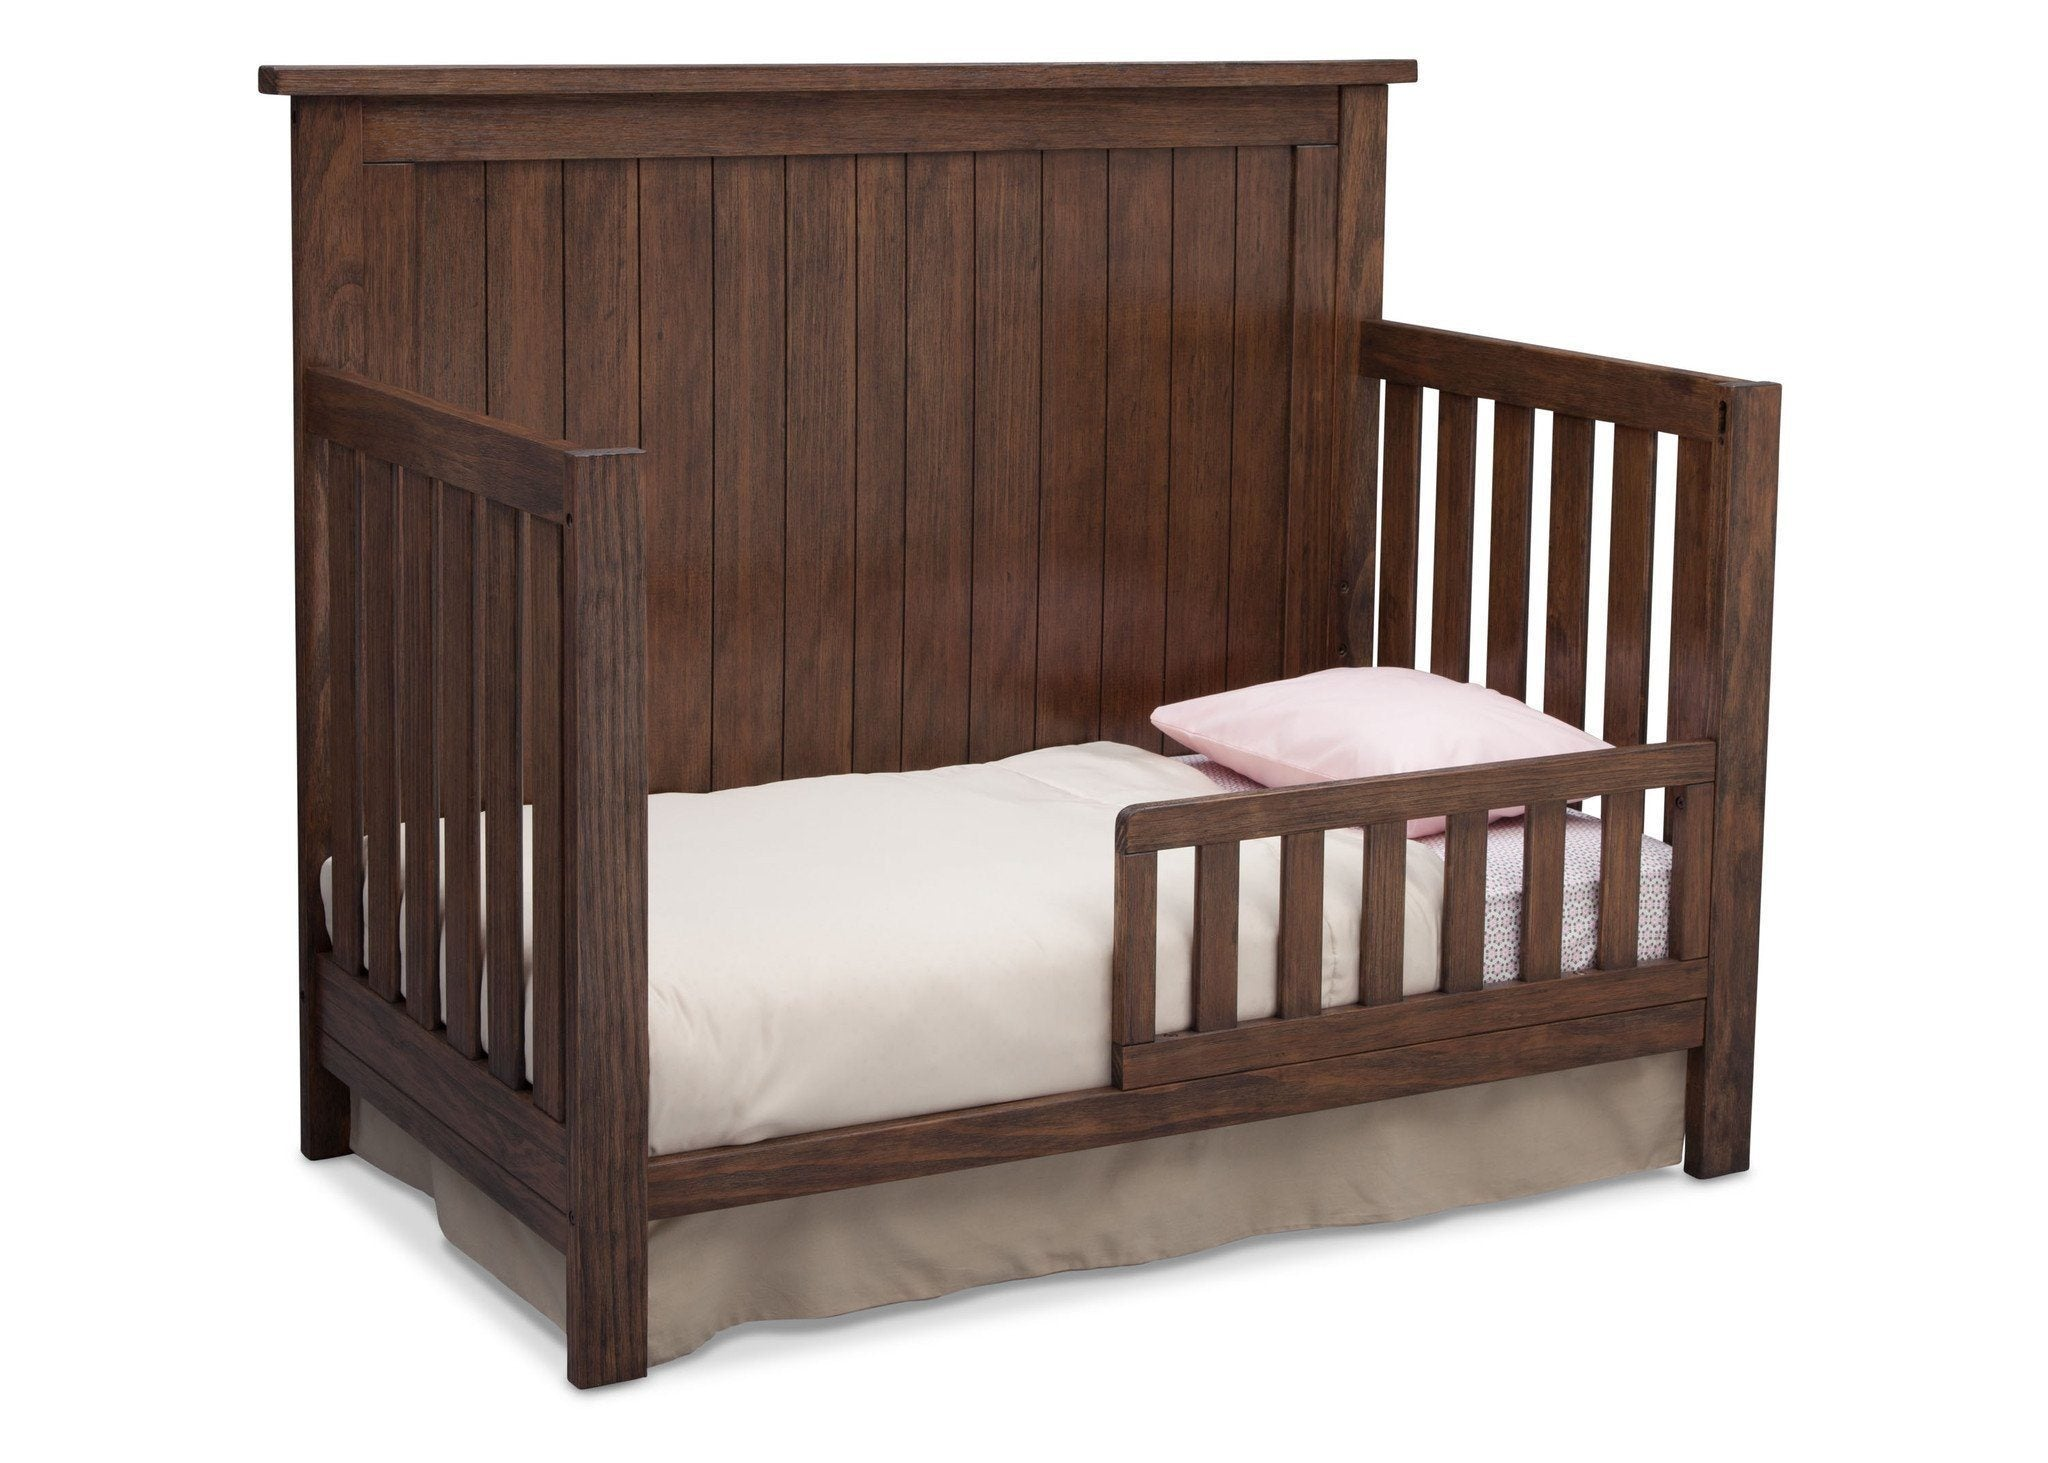 Serta Rustic Oak (229) Northbrook 4-in-1 Crib, Side View with Toddler Bed Conversion b5b